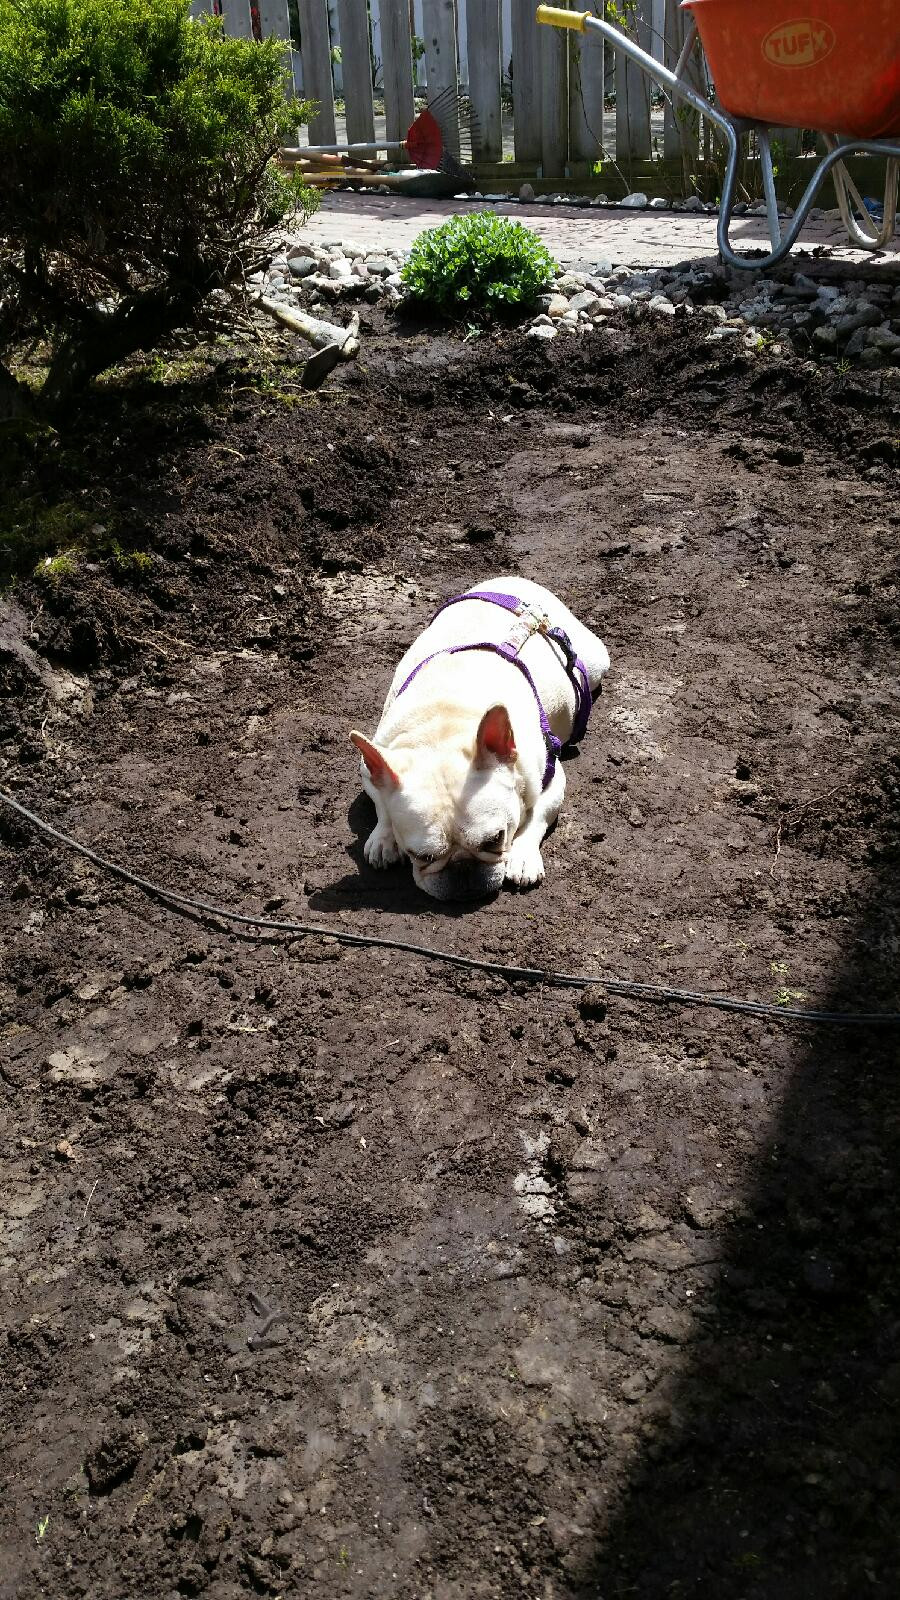 Mona, the french bulldog landscaper napping on the ground that was excavated